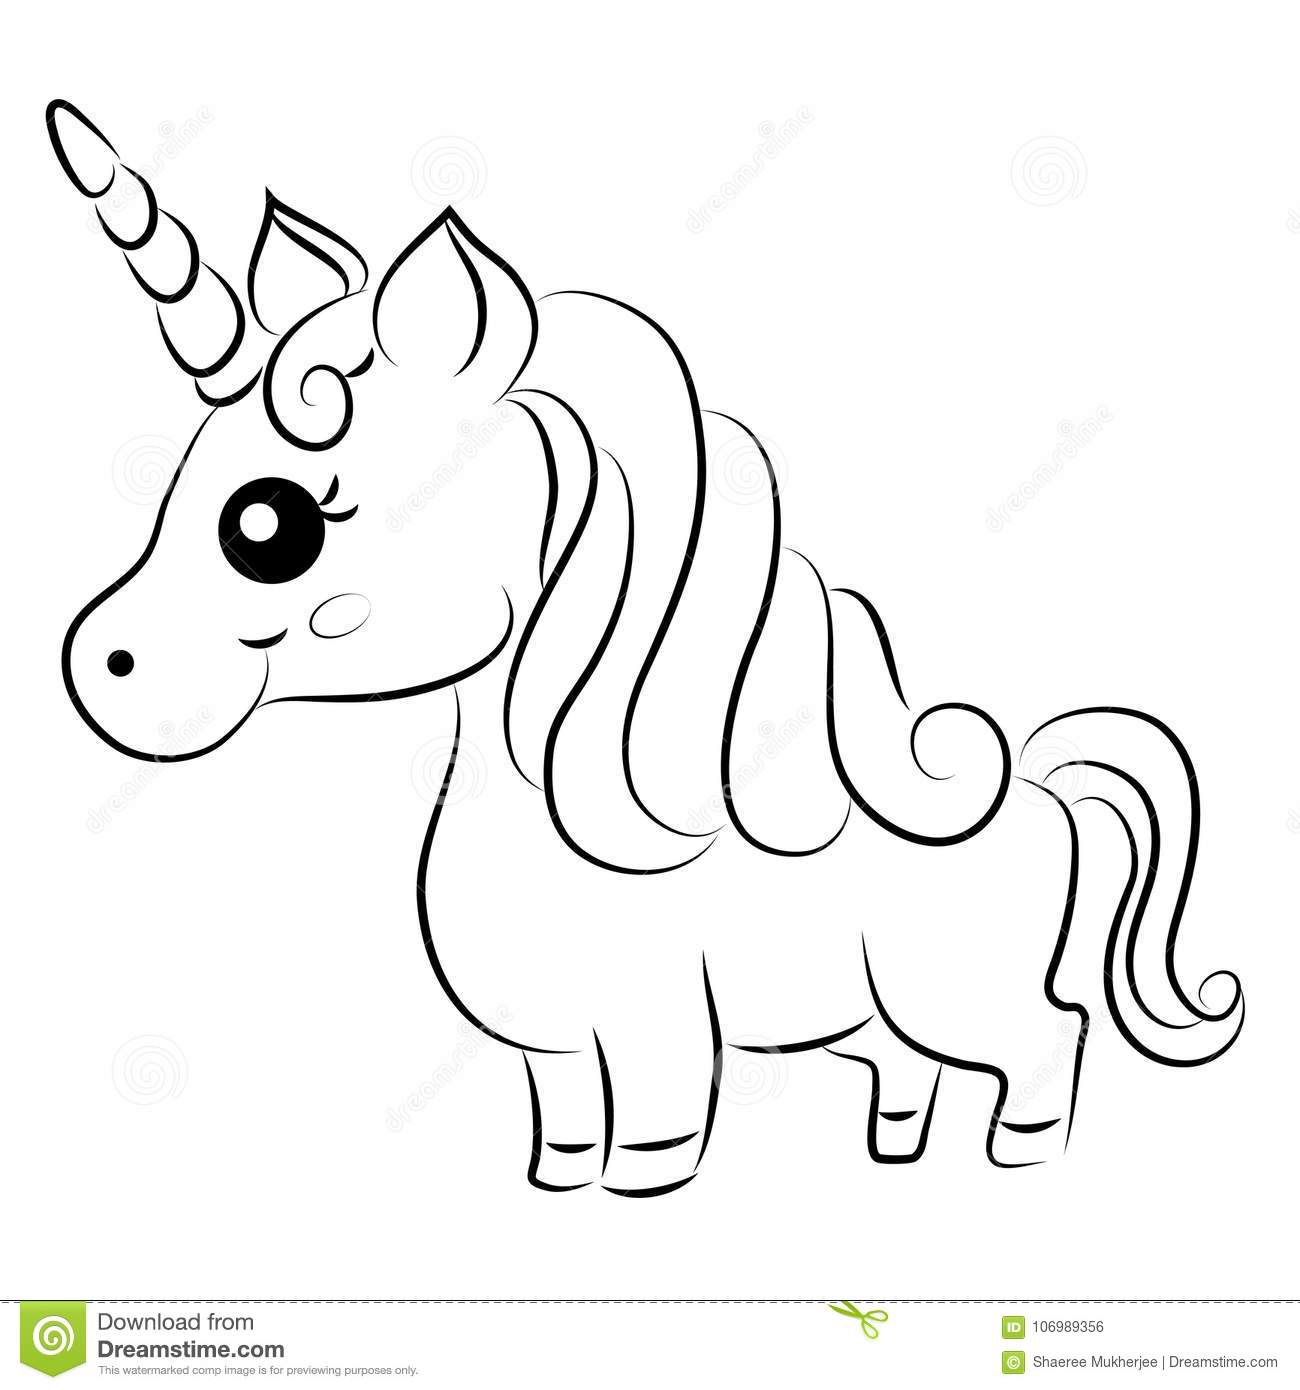 unicorn pictures coloring sheet unicorn coloring pages the sun flower pages unicorn pictures sheet coloring